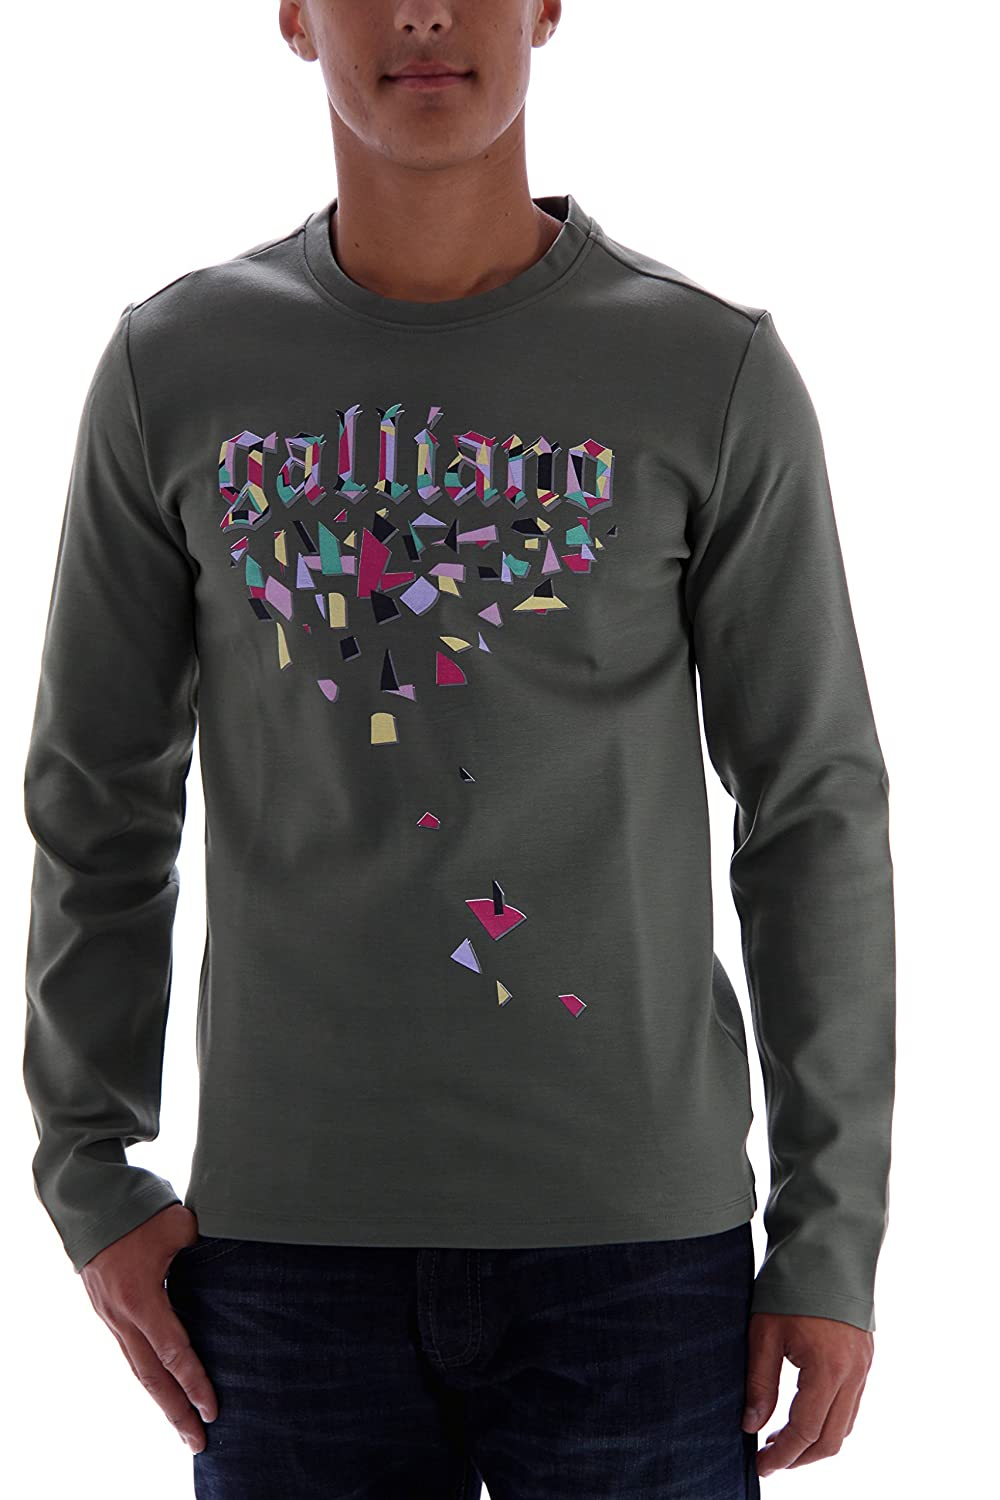 John Galliano Men's Sweatshirt Green Green Small